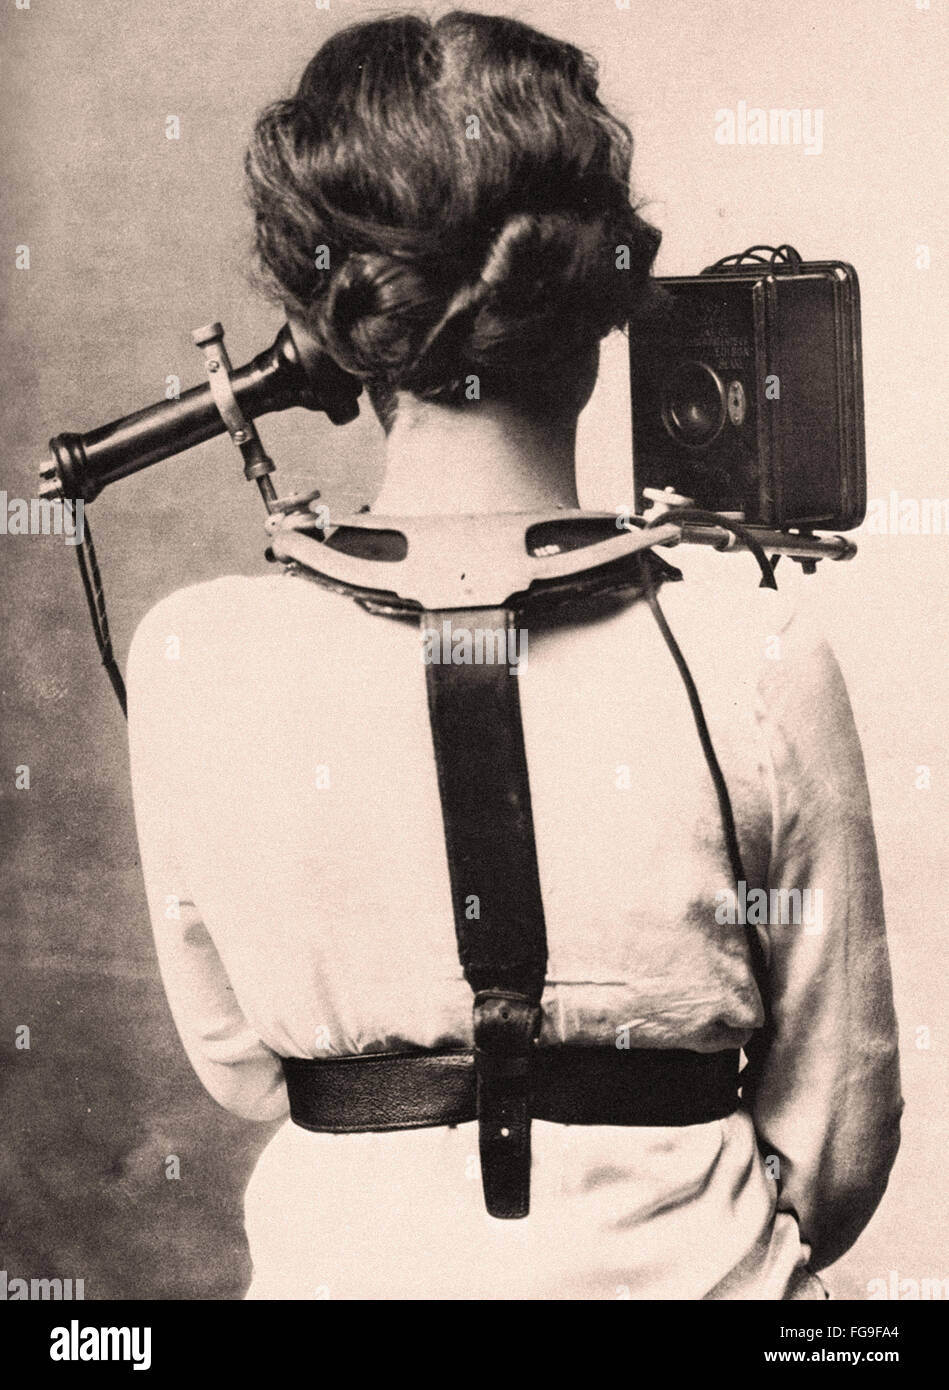 switchboard operator vintage stock photos switchboard operator circa 1880 this early switchboard operator hardware weighed 6 pounds first mobile phone